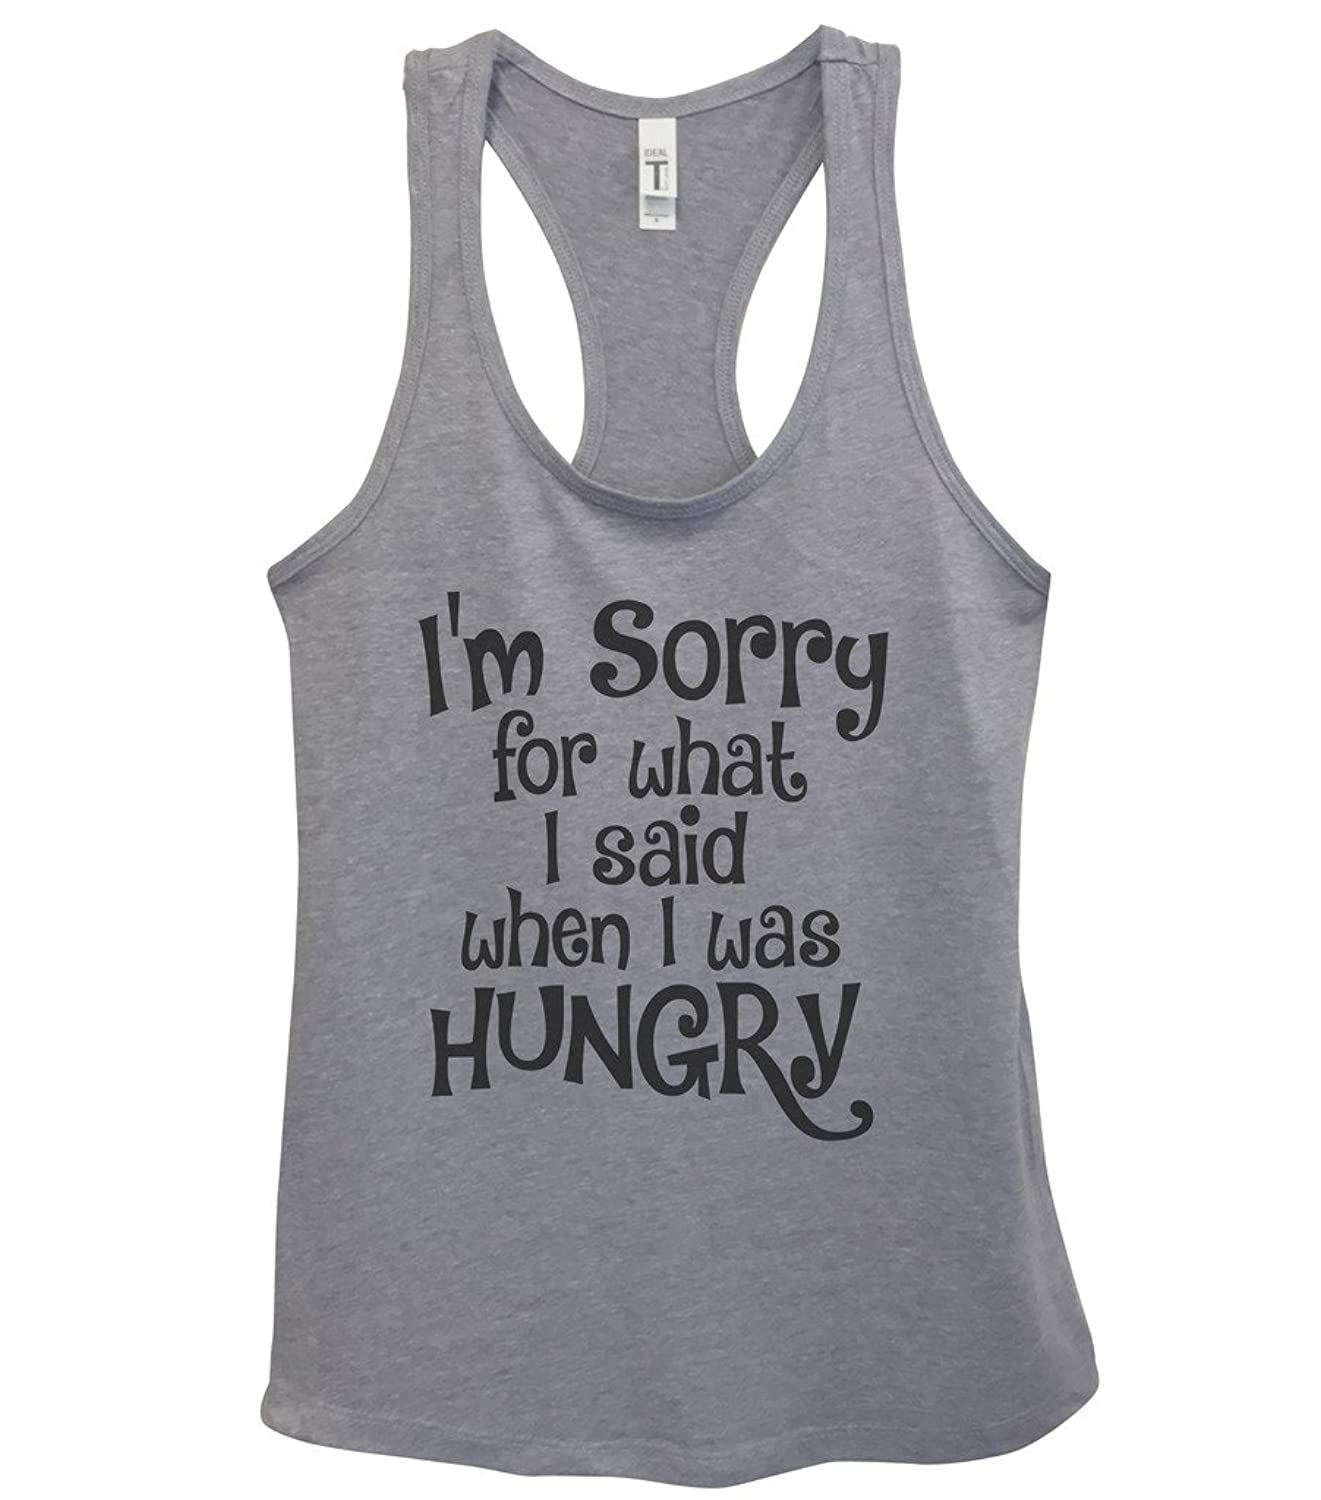 Funny Tanks 鈥淚m Sorry For What I Said I Was Hungry鈥